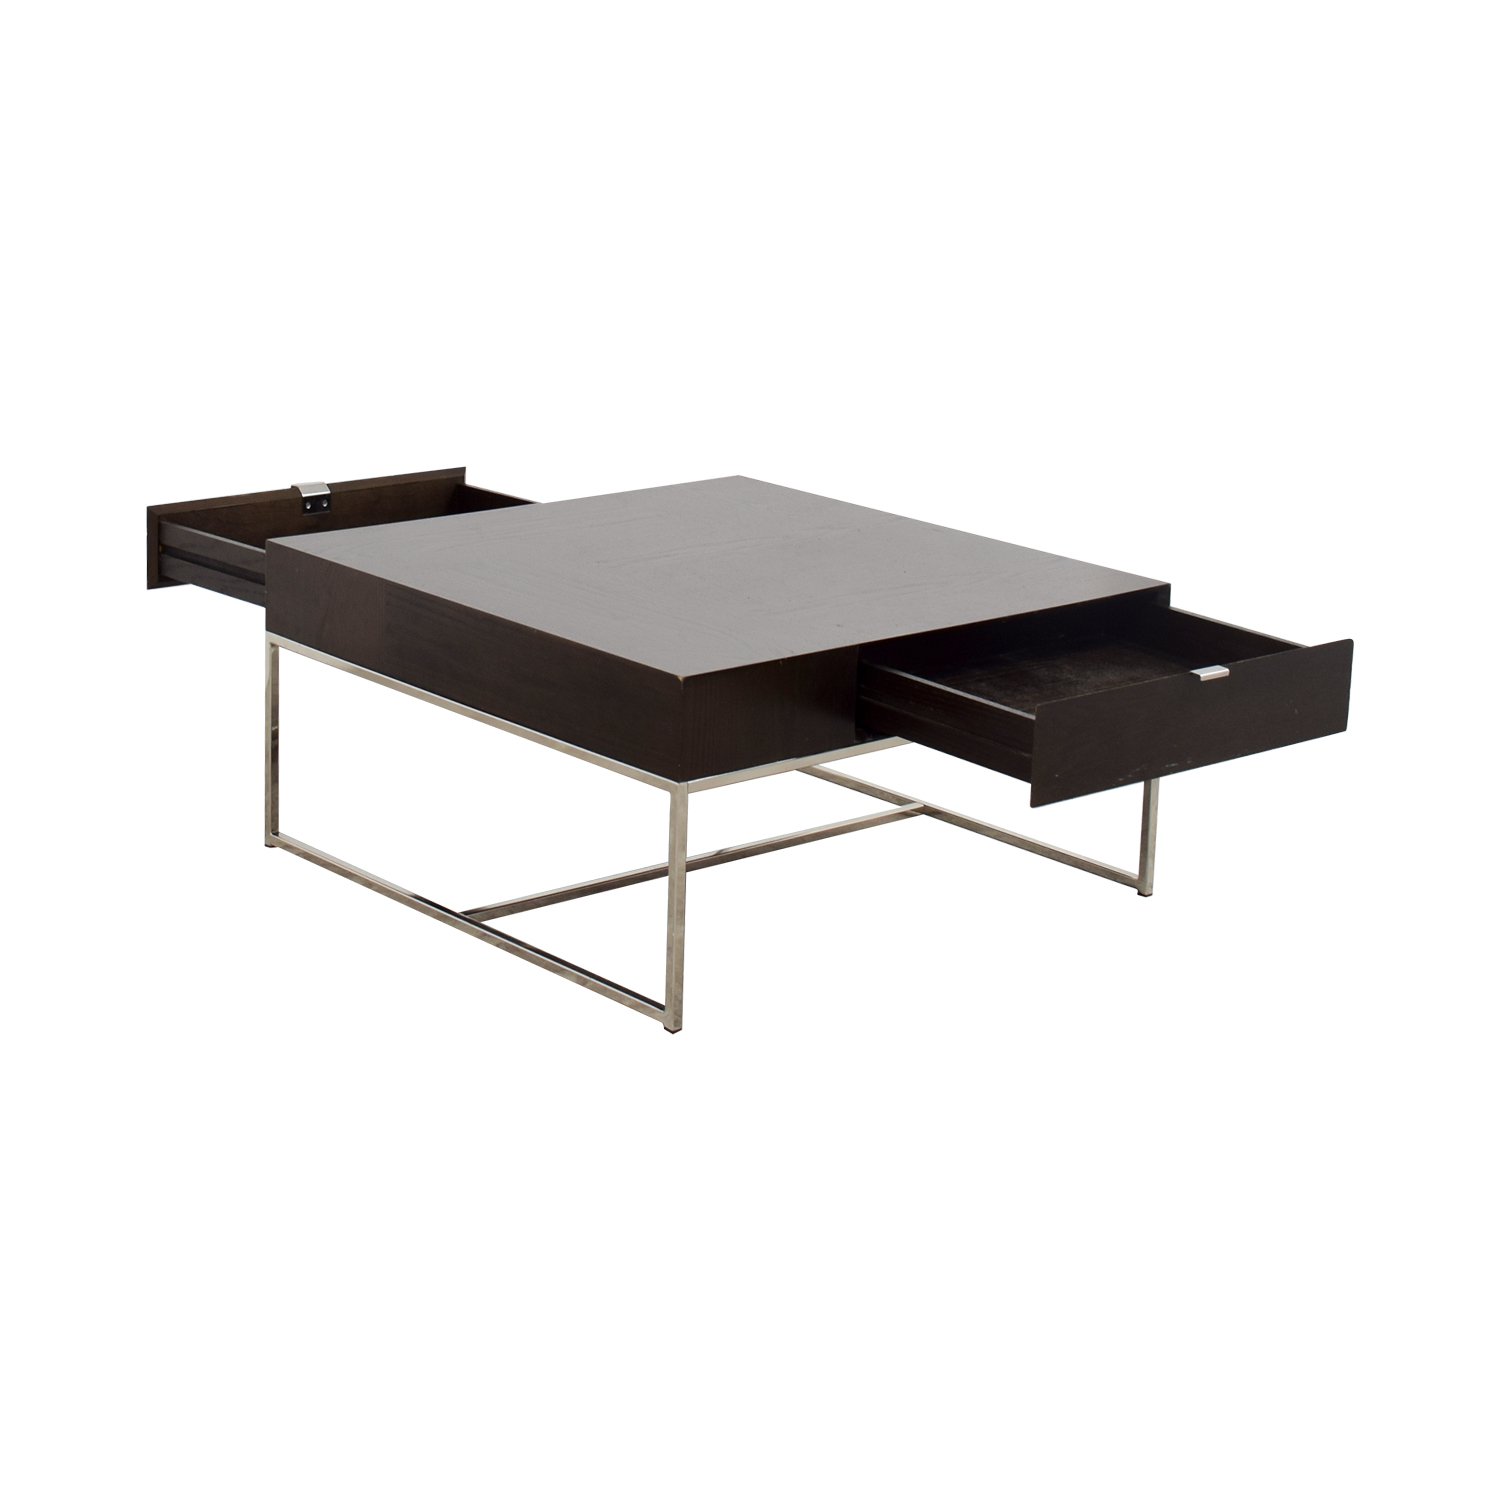 84 Off West Elm West Elm Square Coffee Table With Drawers Tables